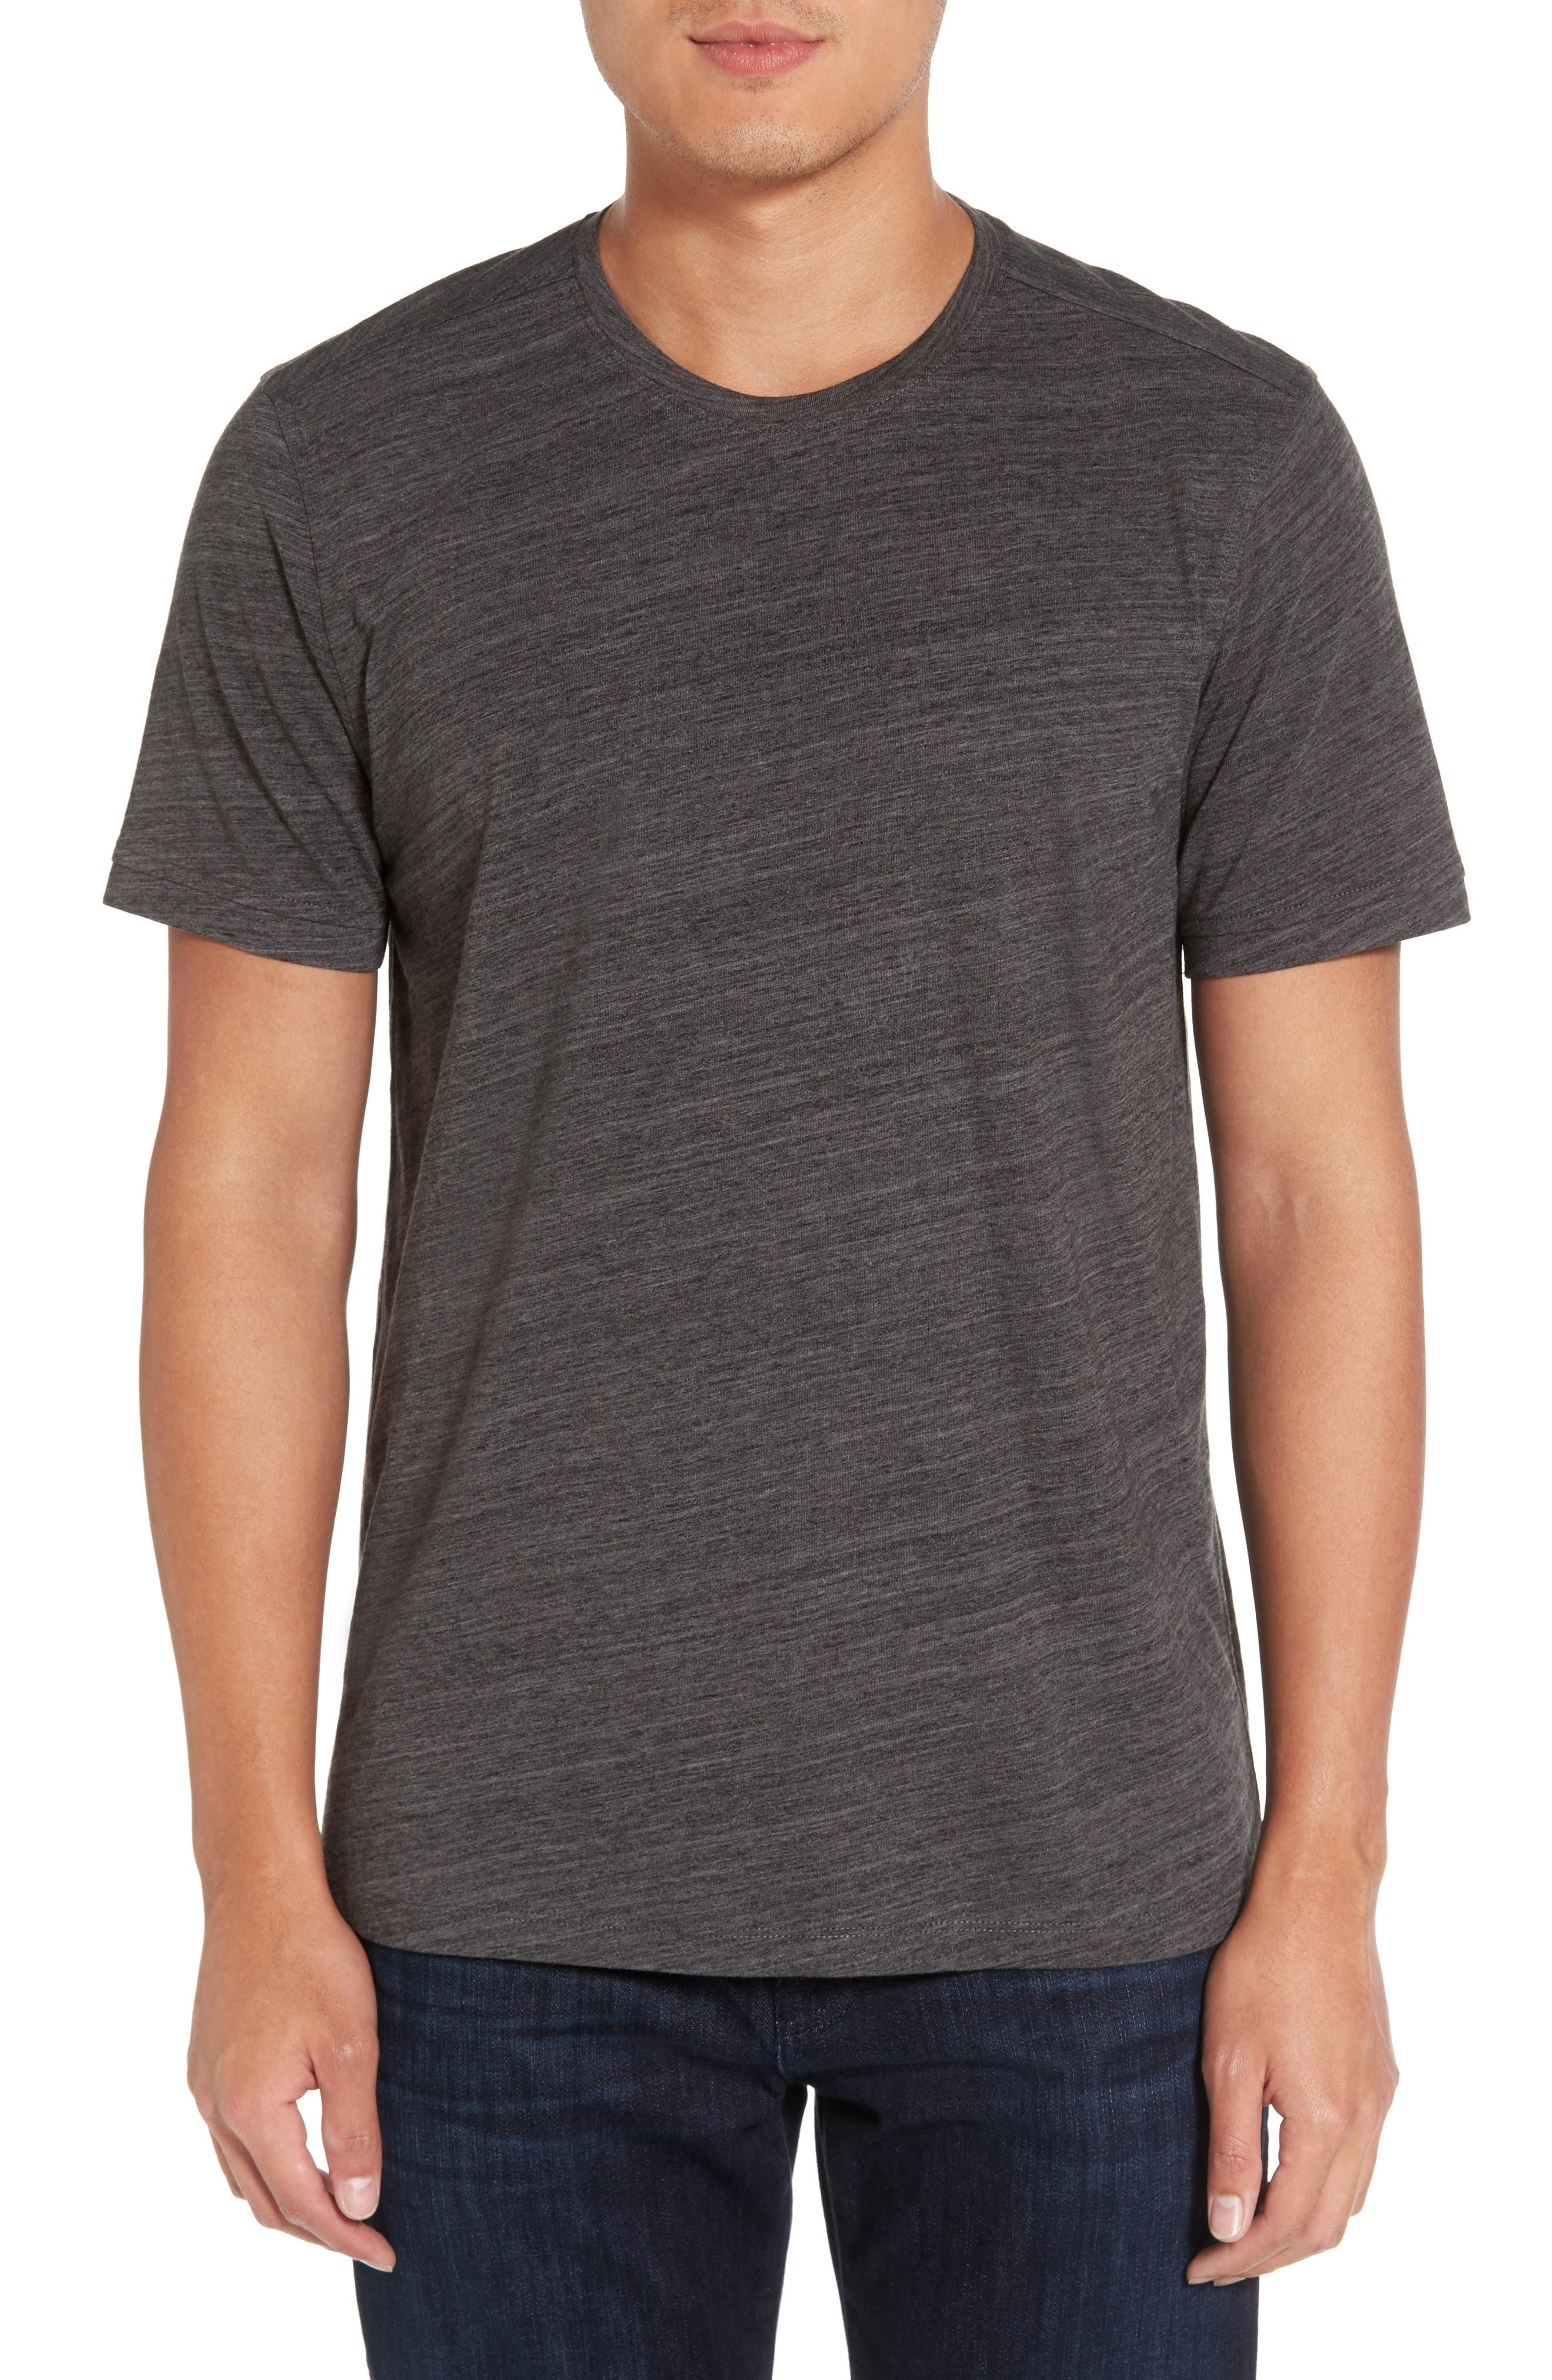 Texture T-Shirt,                         Main,                         color, 001